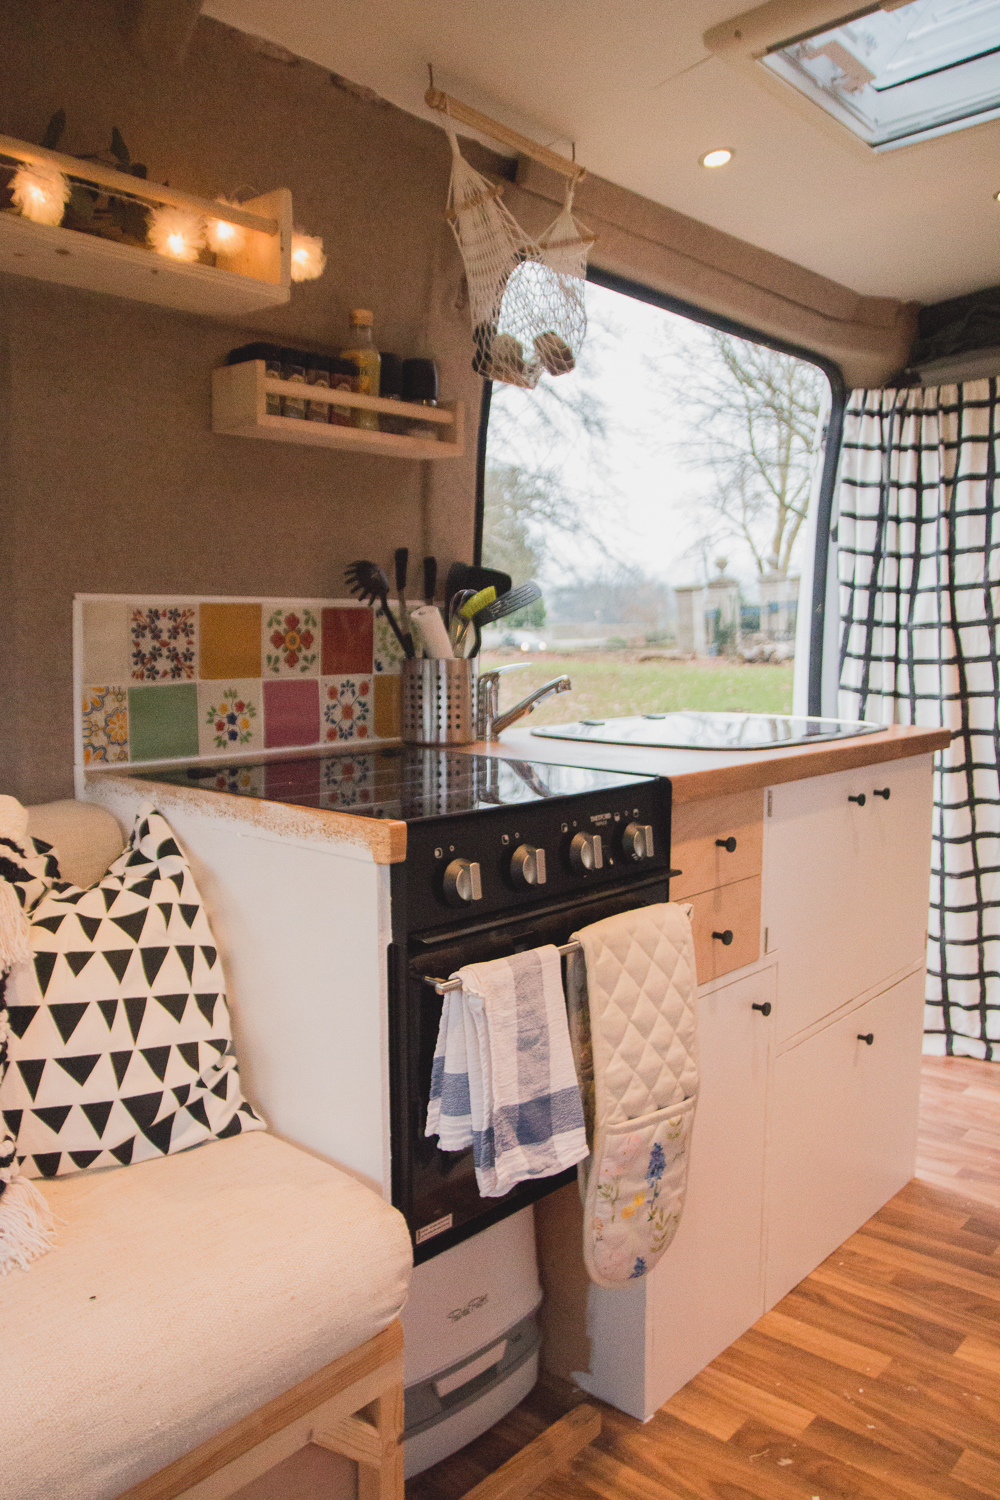 Adventures in a Camper - Van Conversion